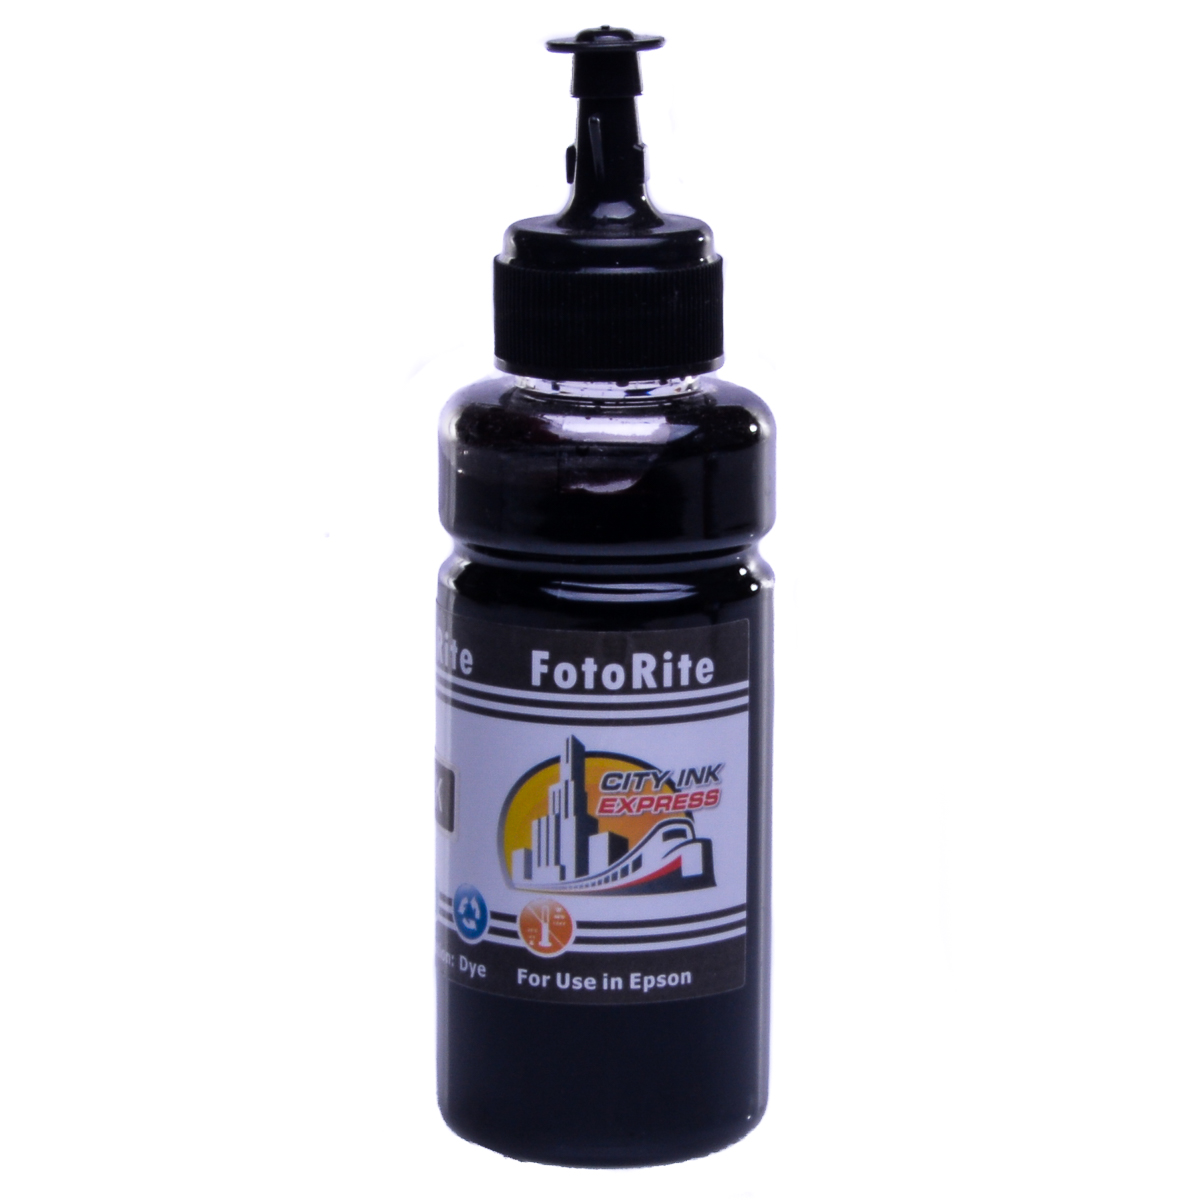 Cheap Black dye ink refill replaces Epson WF-3520dwf - T1301